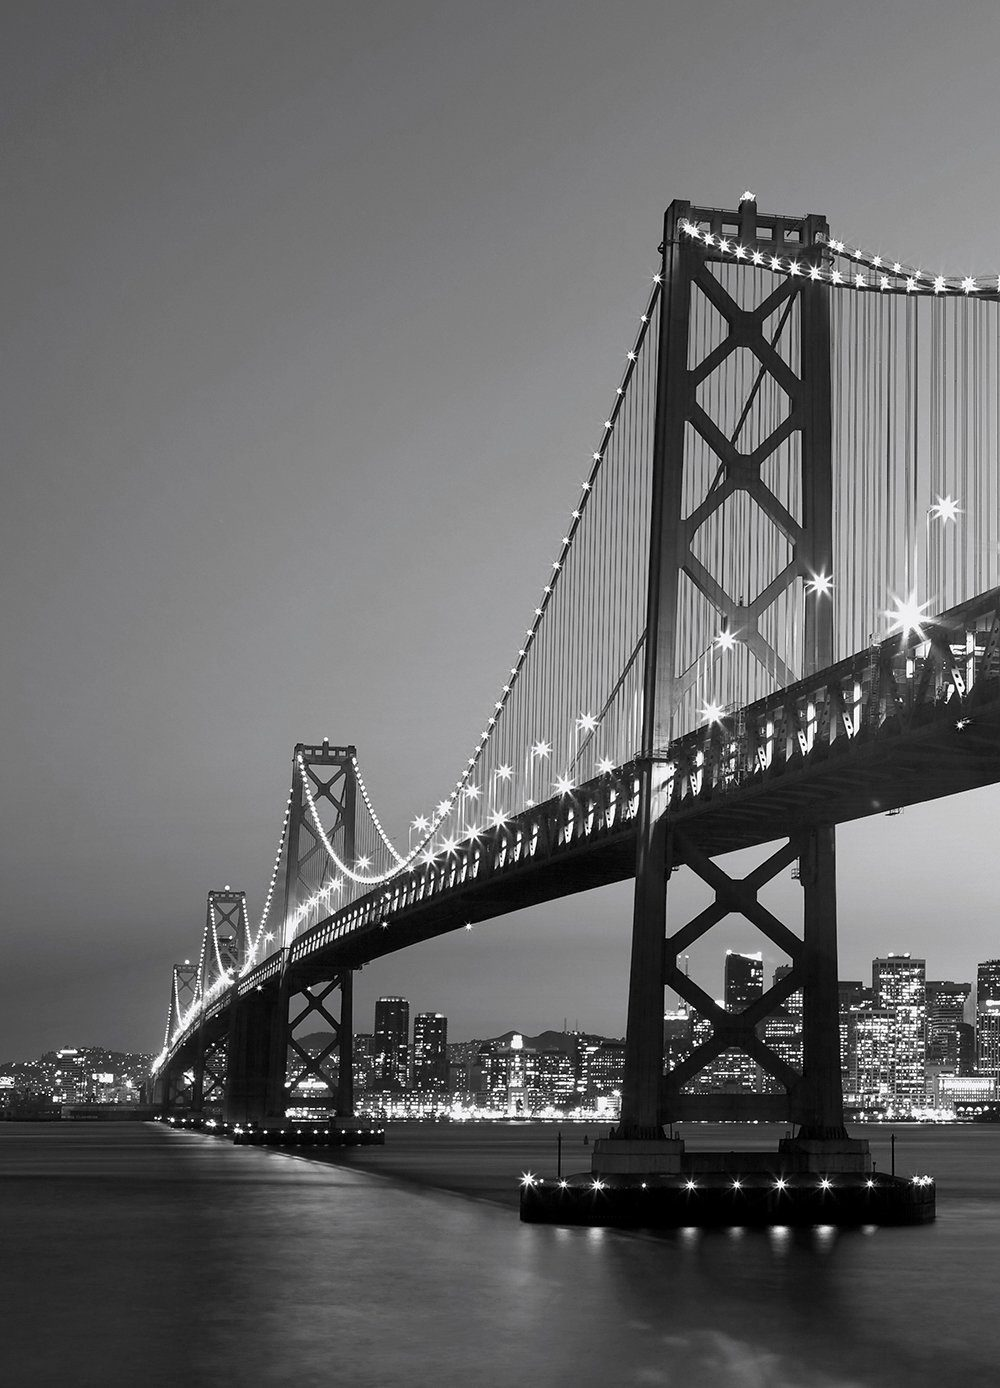 IDEALDECOR Fototapete »San Francisco Skyline«, 4-teilig, 183x254 cm